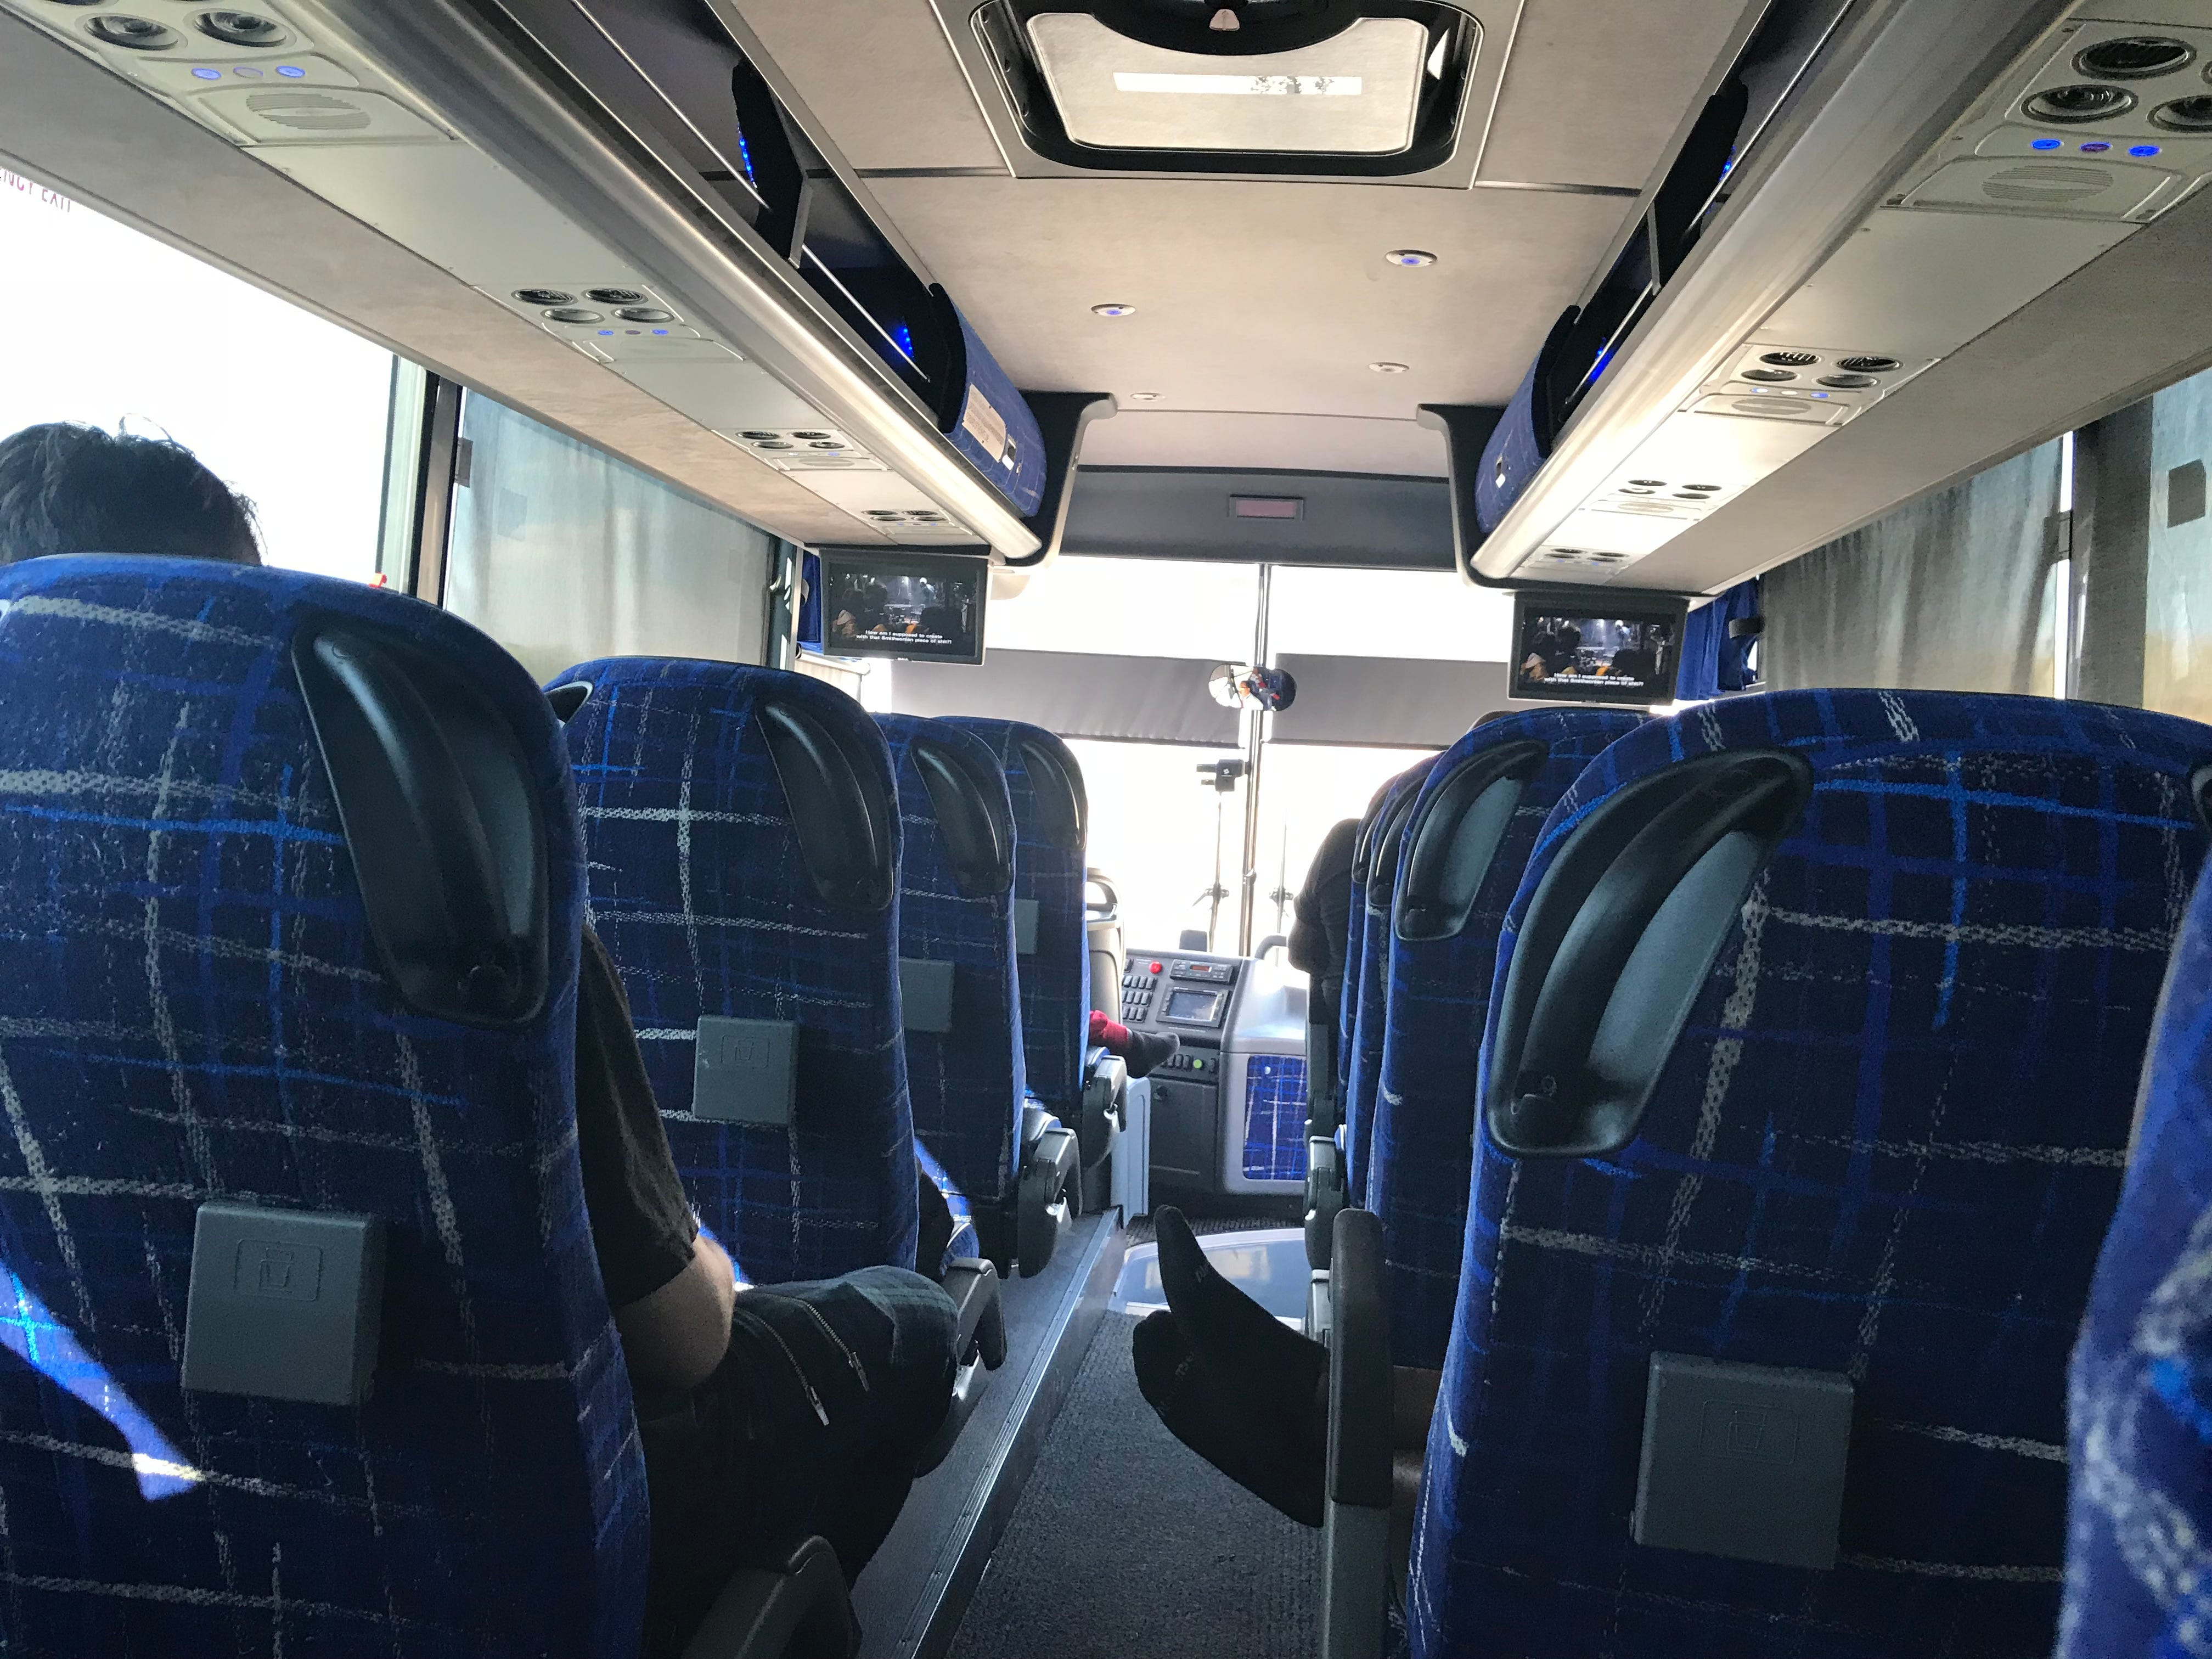 Passengers on a Megabus from Las Vegas to Phoenix. The bus driver shows free movies.